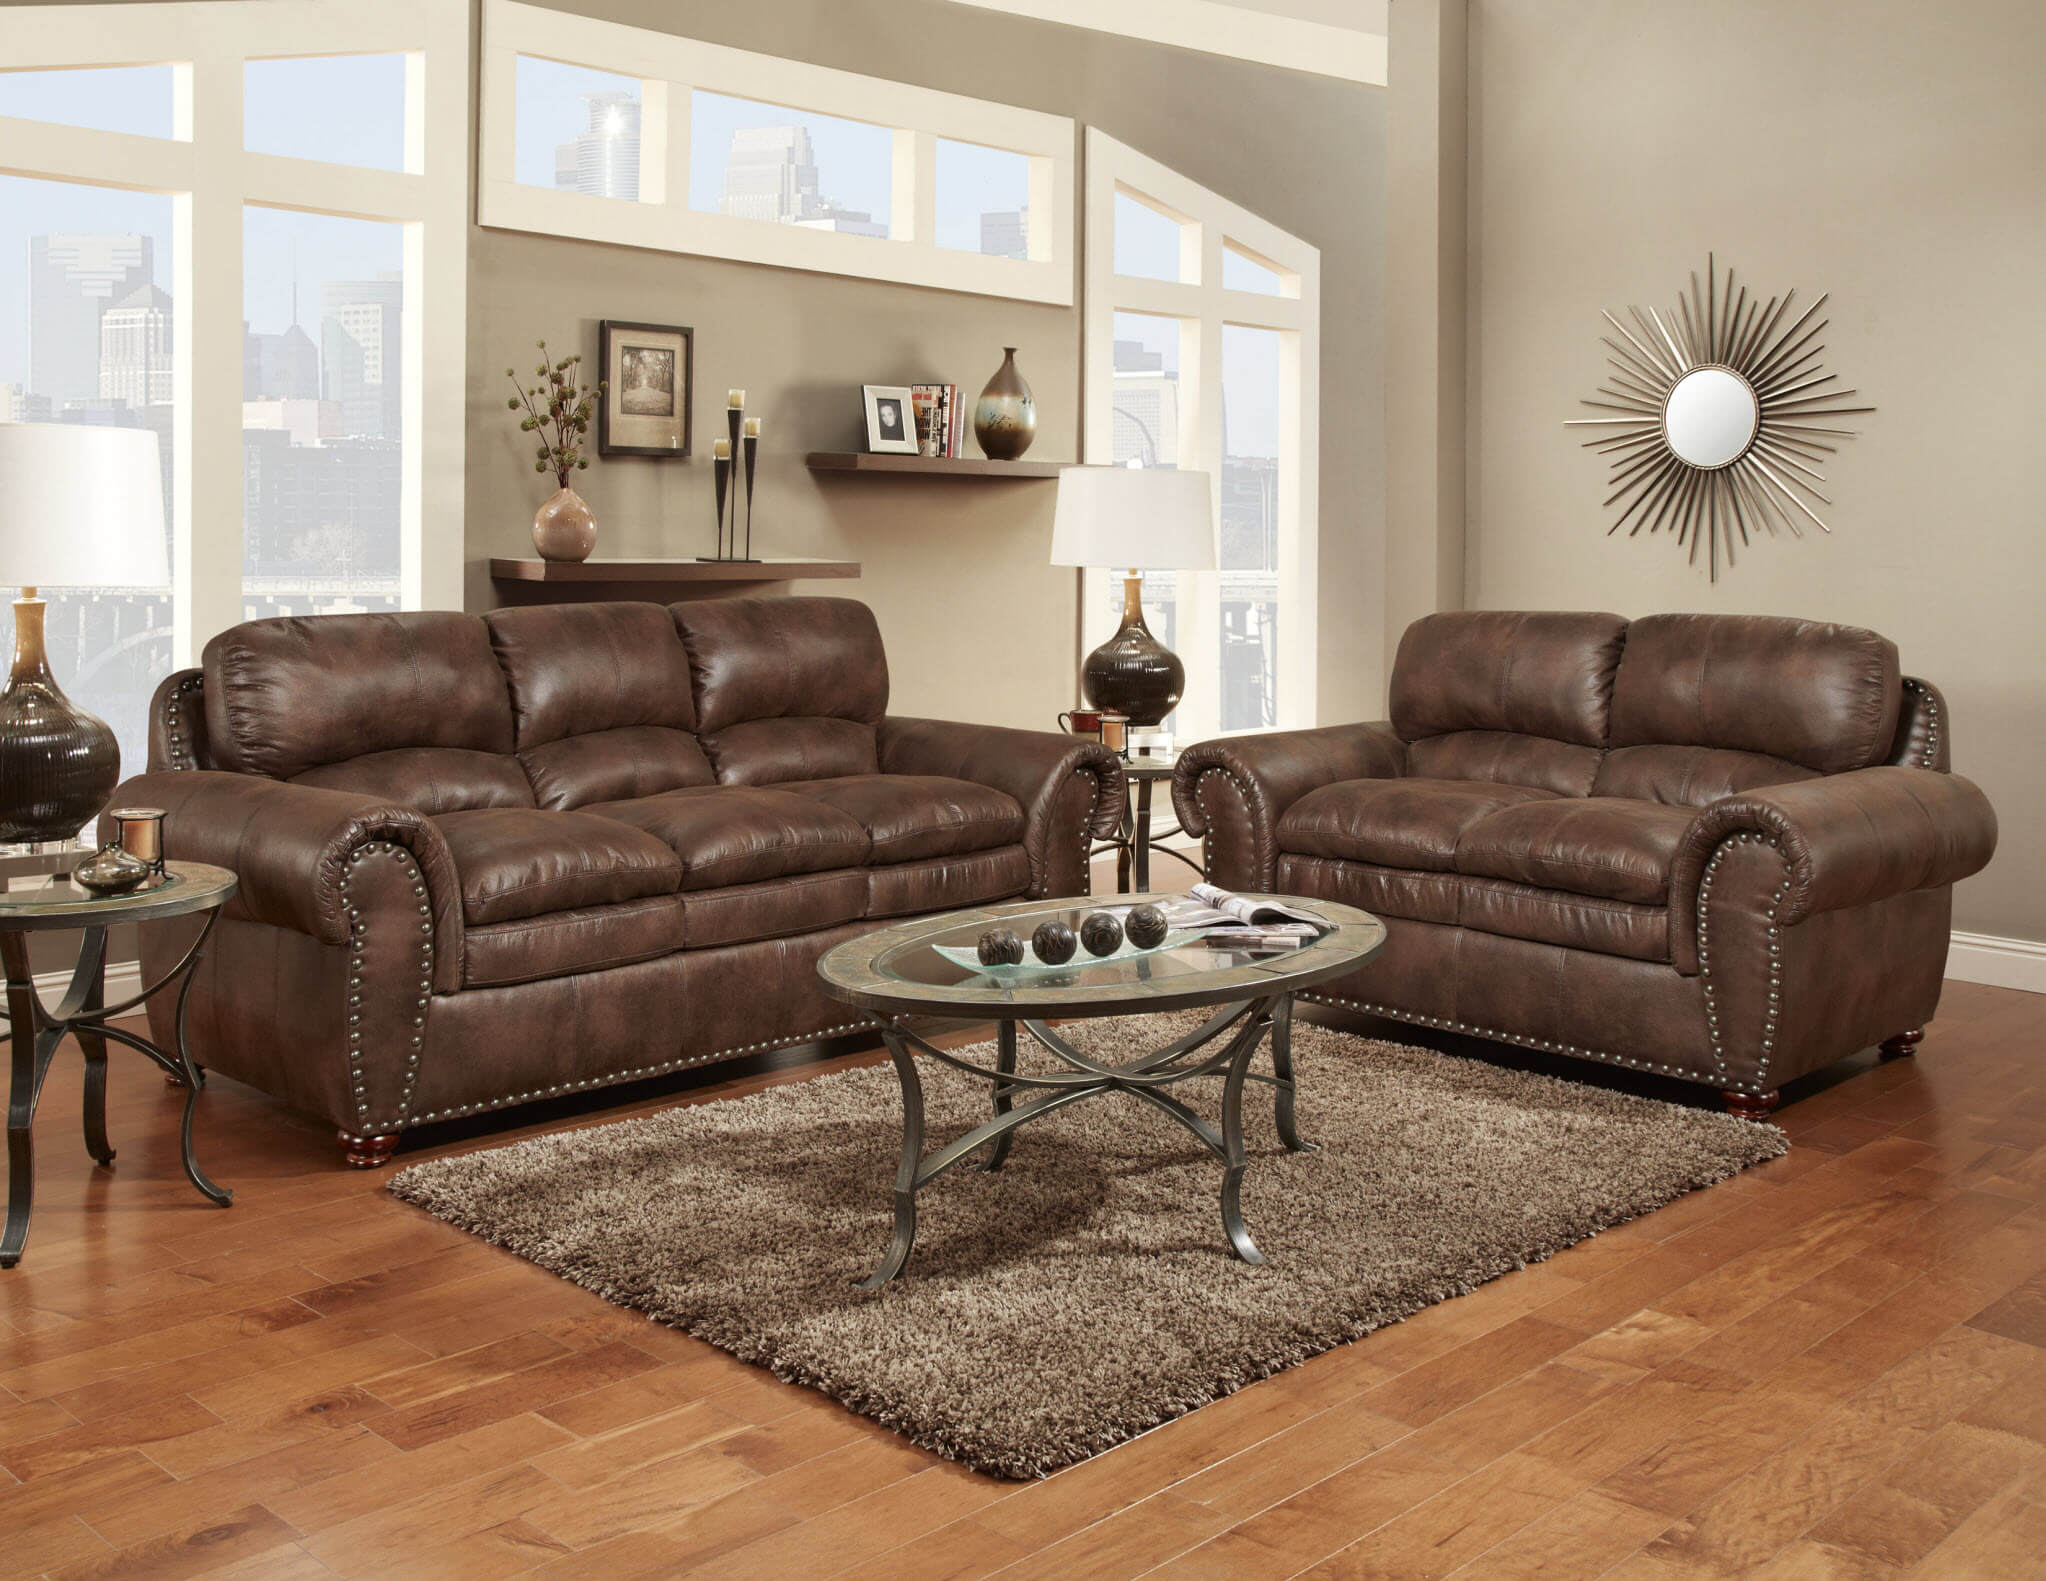 Pleasing 1450 Washington Padre Espresso Sofa And Loveseat Discontinued Ibusinesslaw Wood Chair Design Ideas Ibusinesslaworg